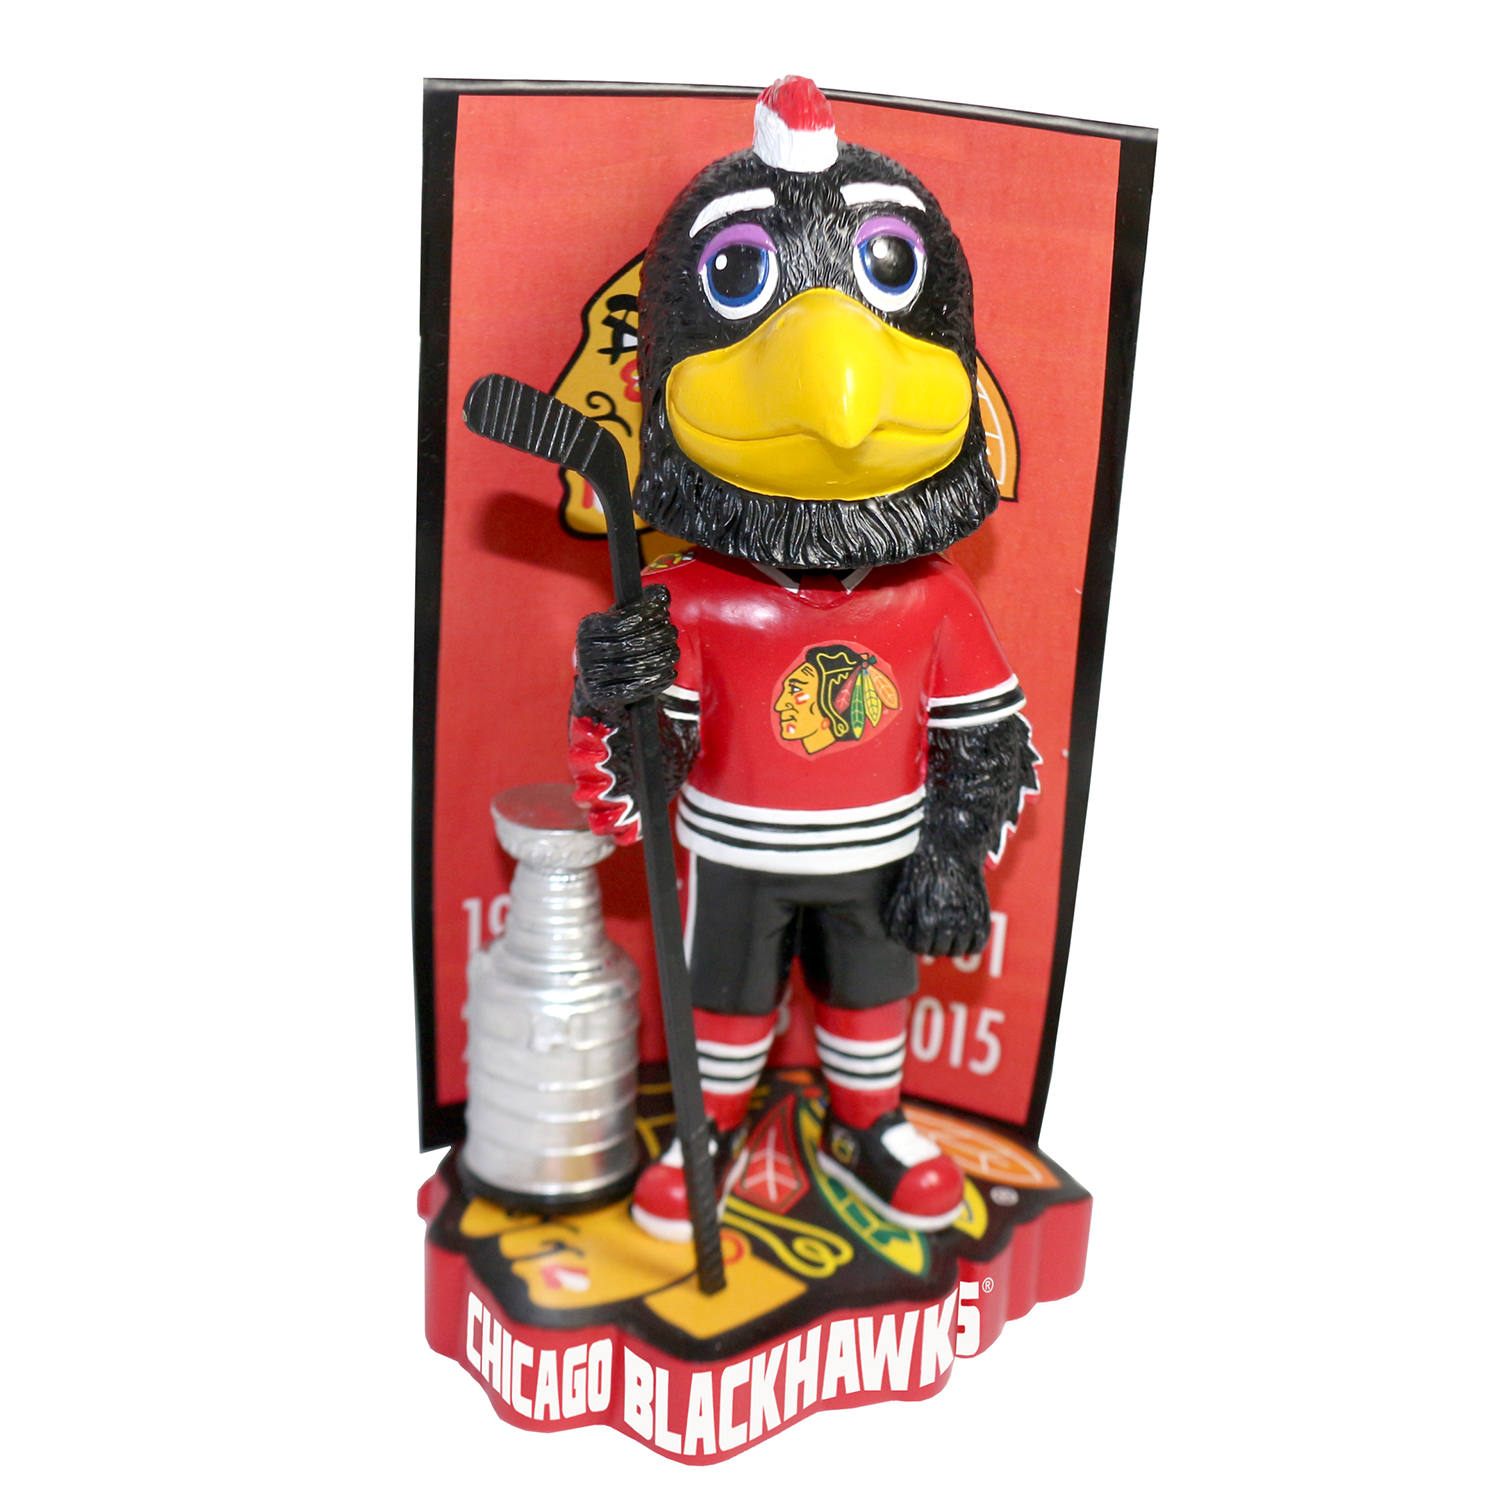 Chicago Blackhawks Tommy Hawk Stanley Cup Champions Banner Mascot Bobblehead